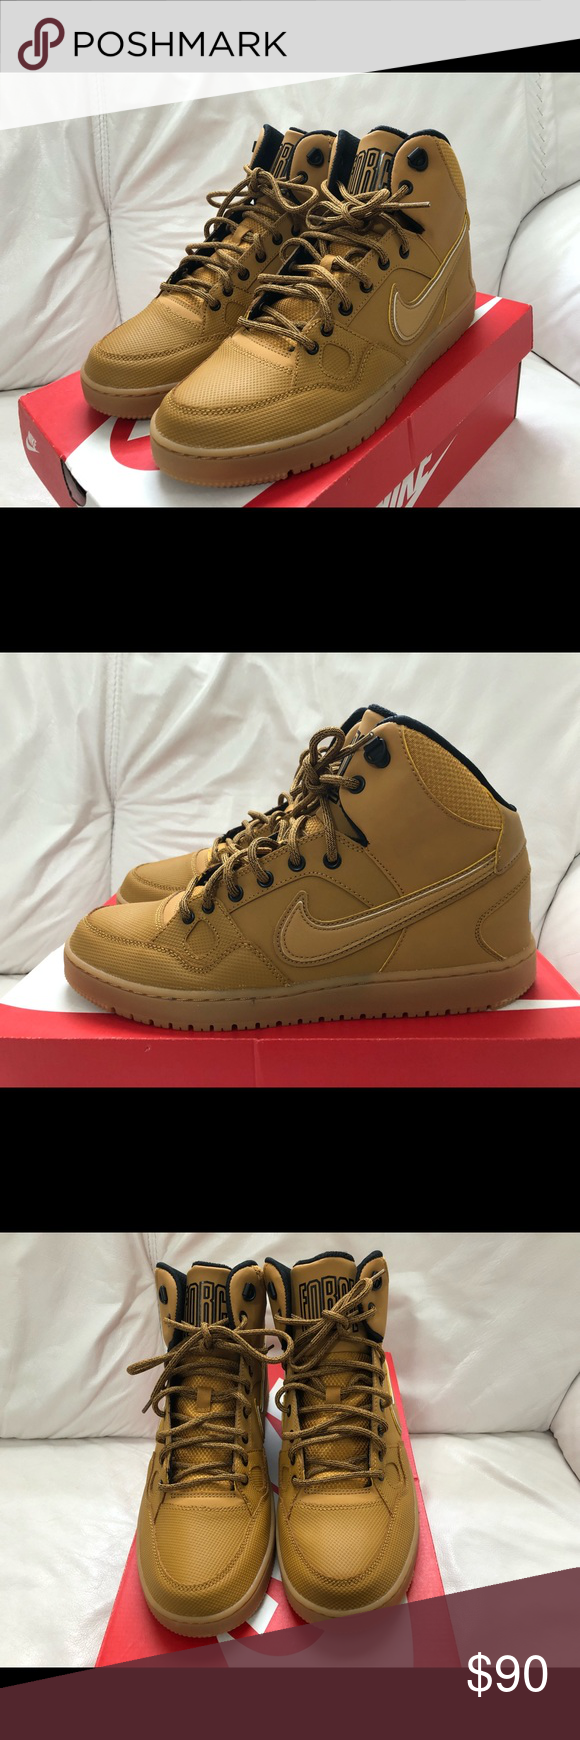 c7b2e4a498dd Nike Son Of Force Mid Winter Wheat Black Gum New Nike Son Of Force Mid  Winter Wheat Black Gum Light Brown Men s Size 10.5 New w  Box. Nike Shoes  Athletic ...